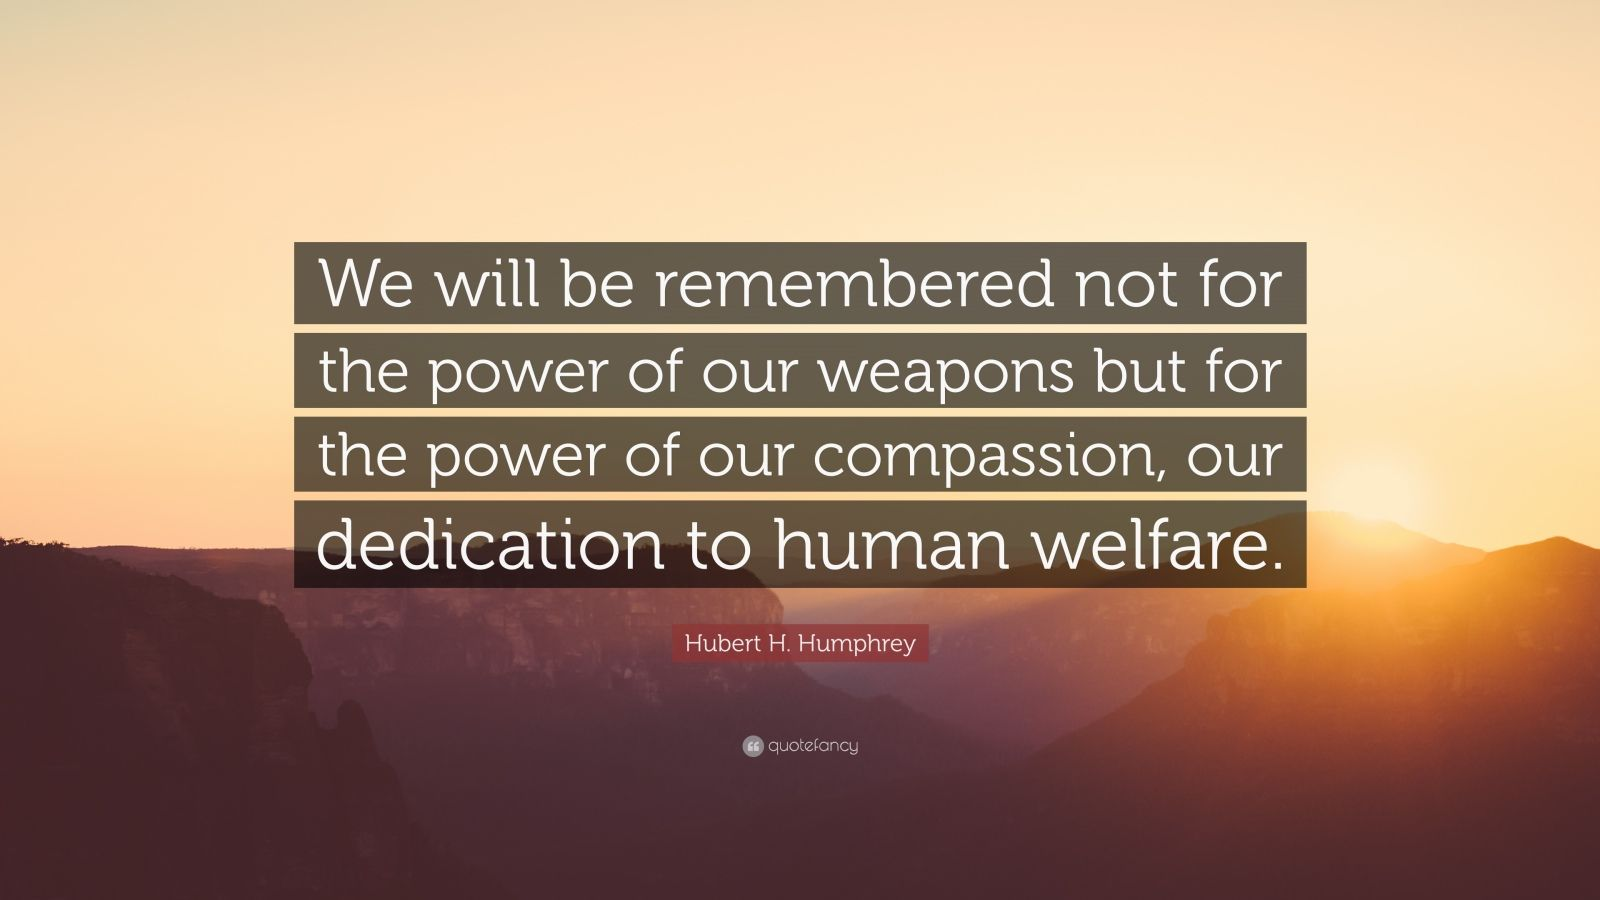 """Hubert H. Humphrey Quote: """"We will be remembered not for the power of our weapons but for the power of our compassion, our dedication to human welfare."""""""